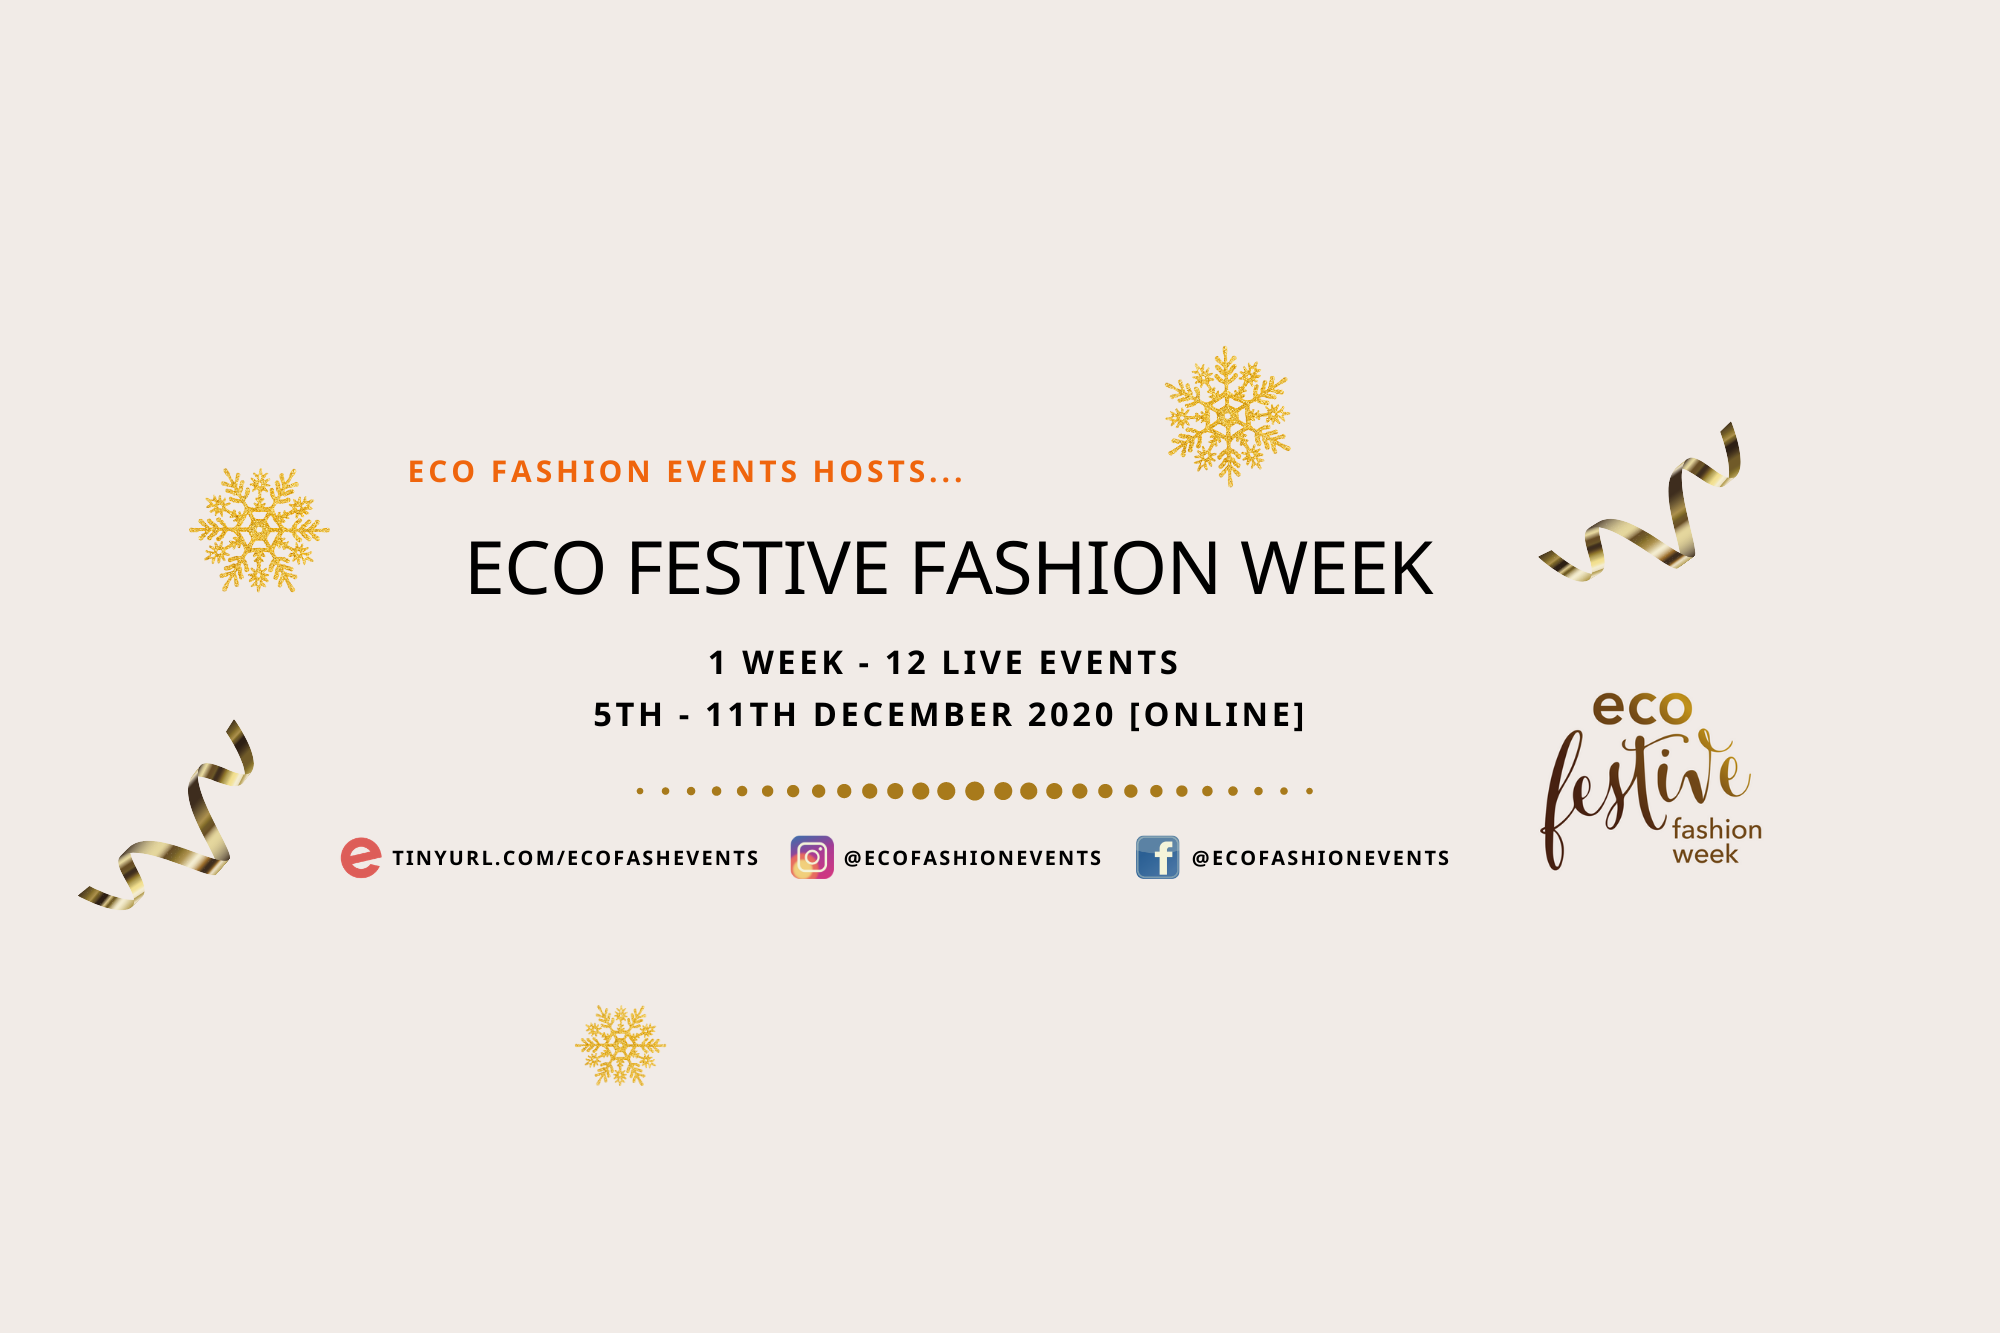 FOR LONDON EVENTS Eco Festive Fashion Week General Information Poster 5